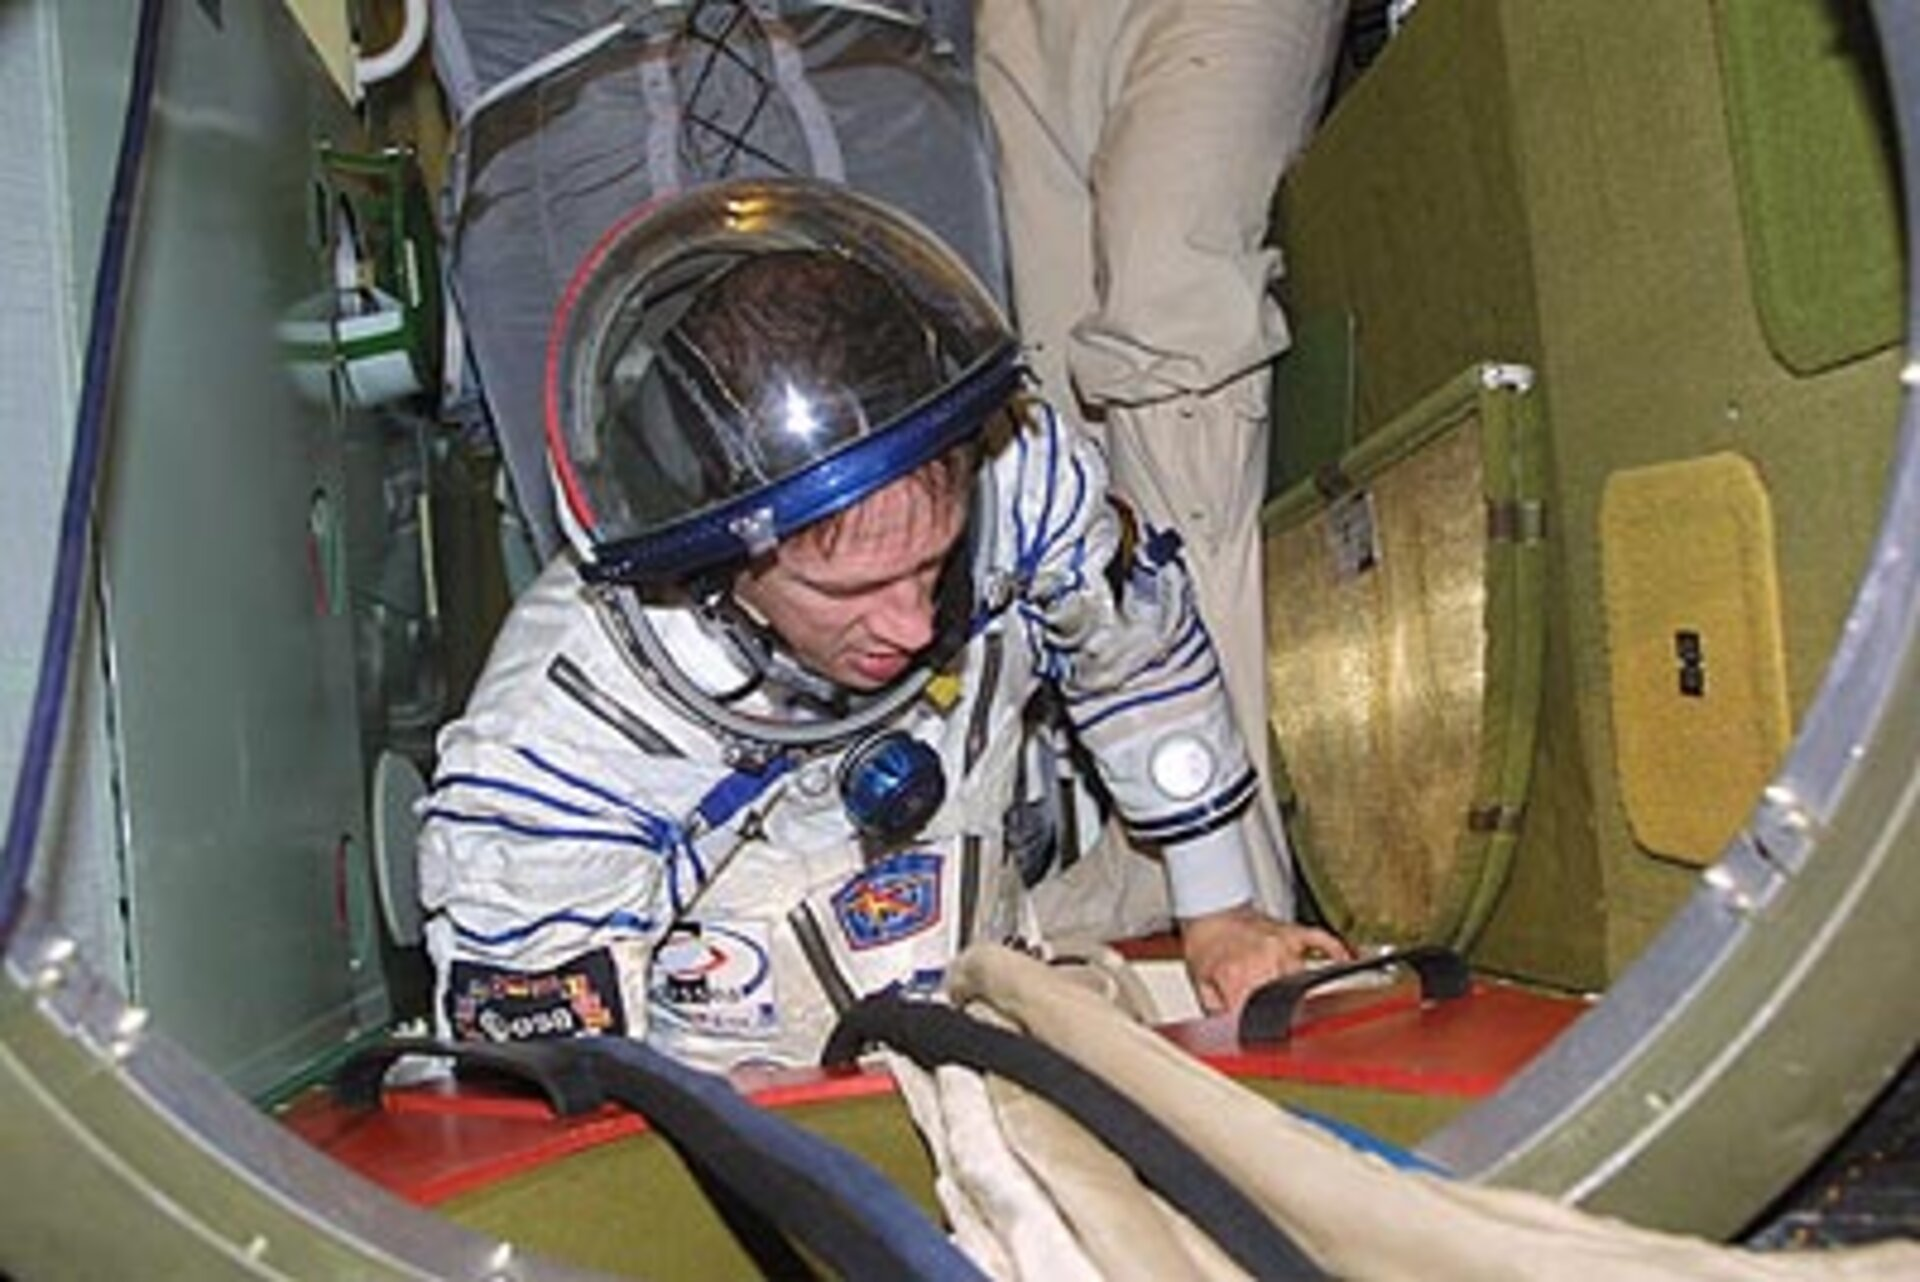 I have a look at the Soyuz TMA spacecraft